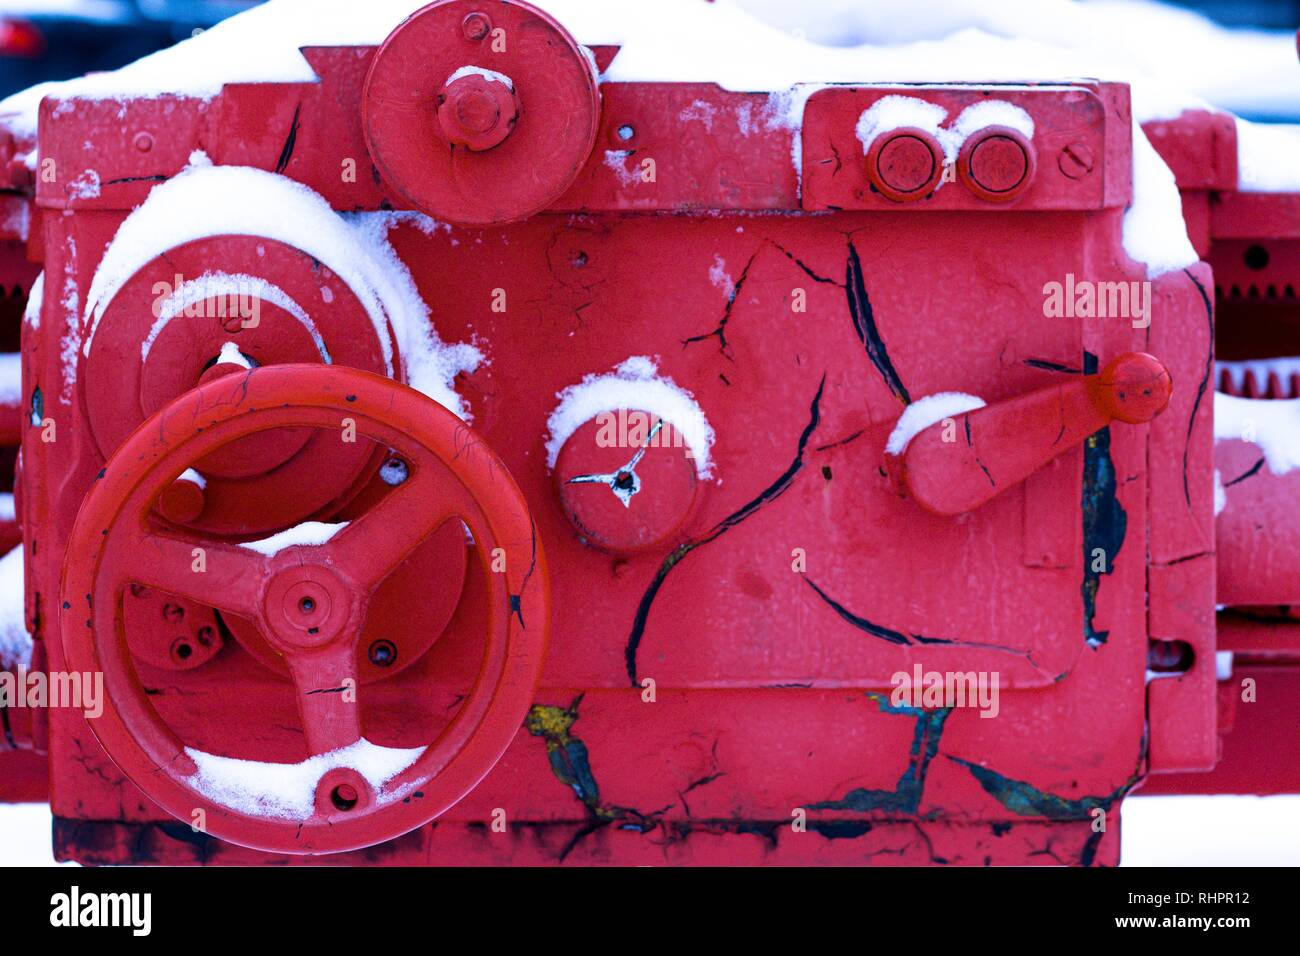 Tractor Parts Stock Photos & Tractor Parts Stock Images - Alamy